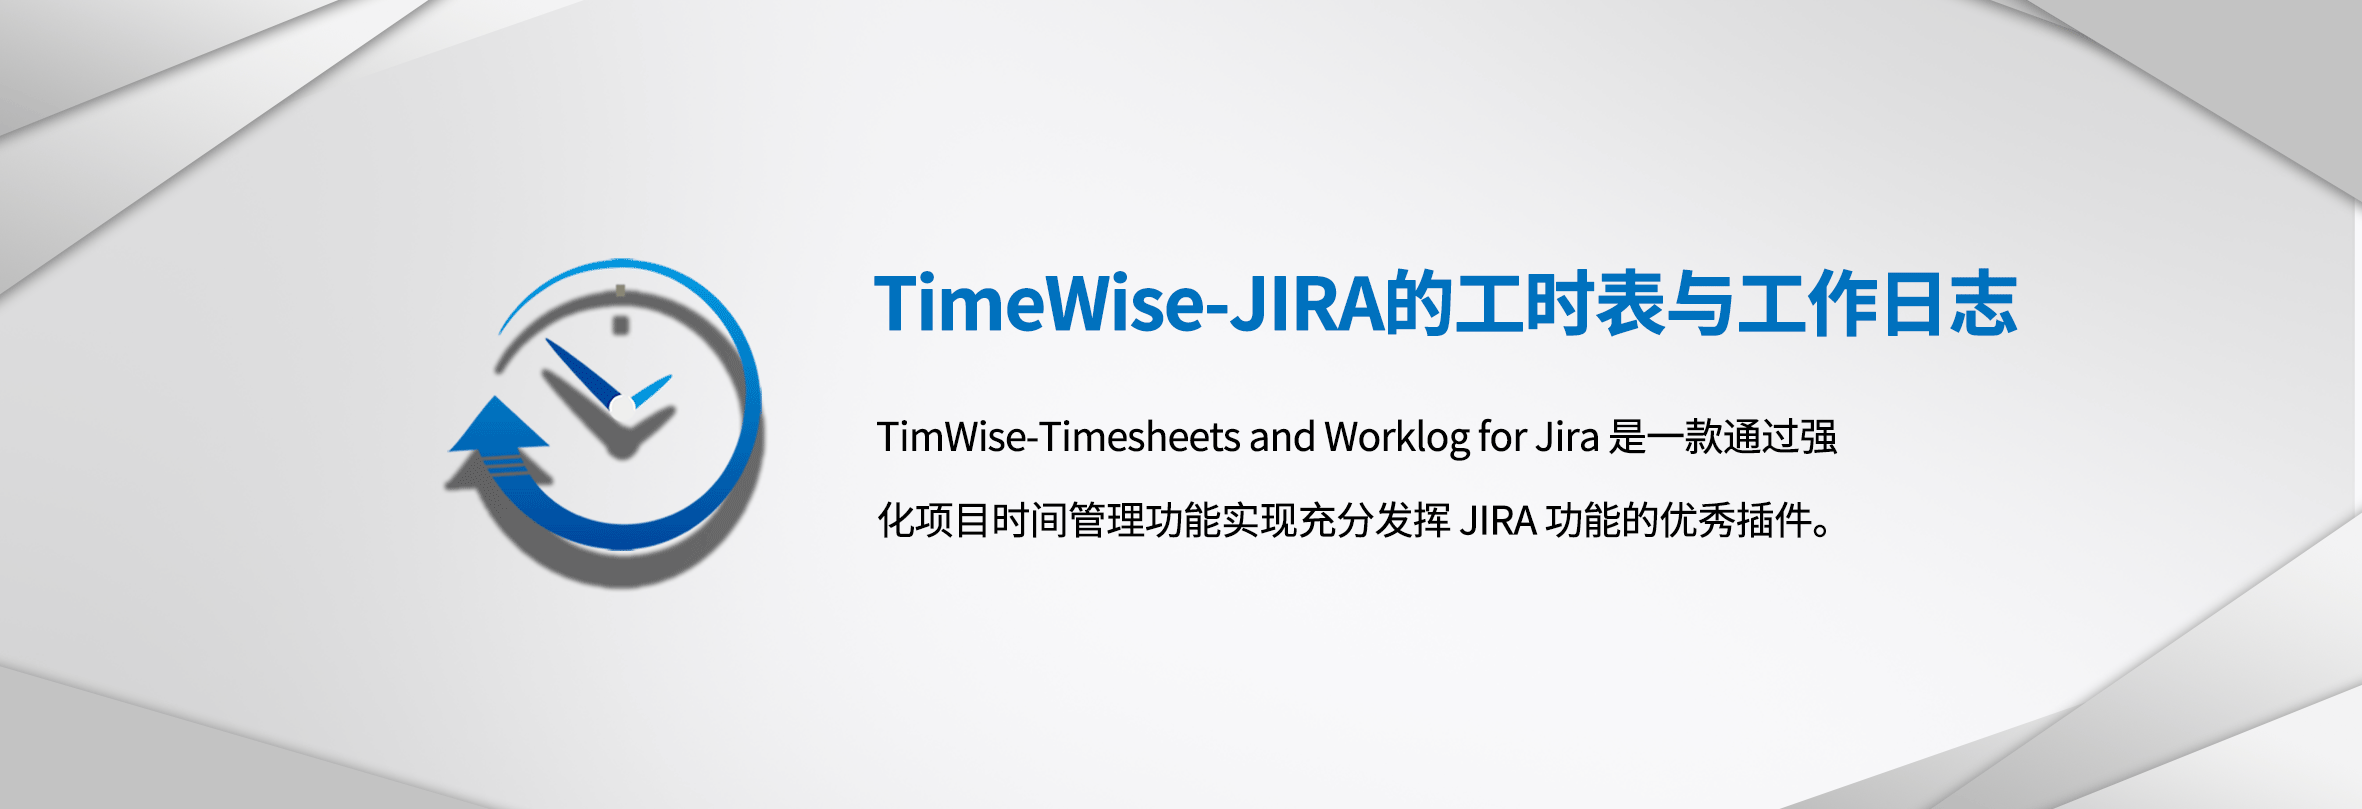 atlassian-timewise-banner